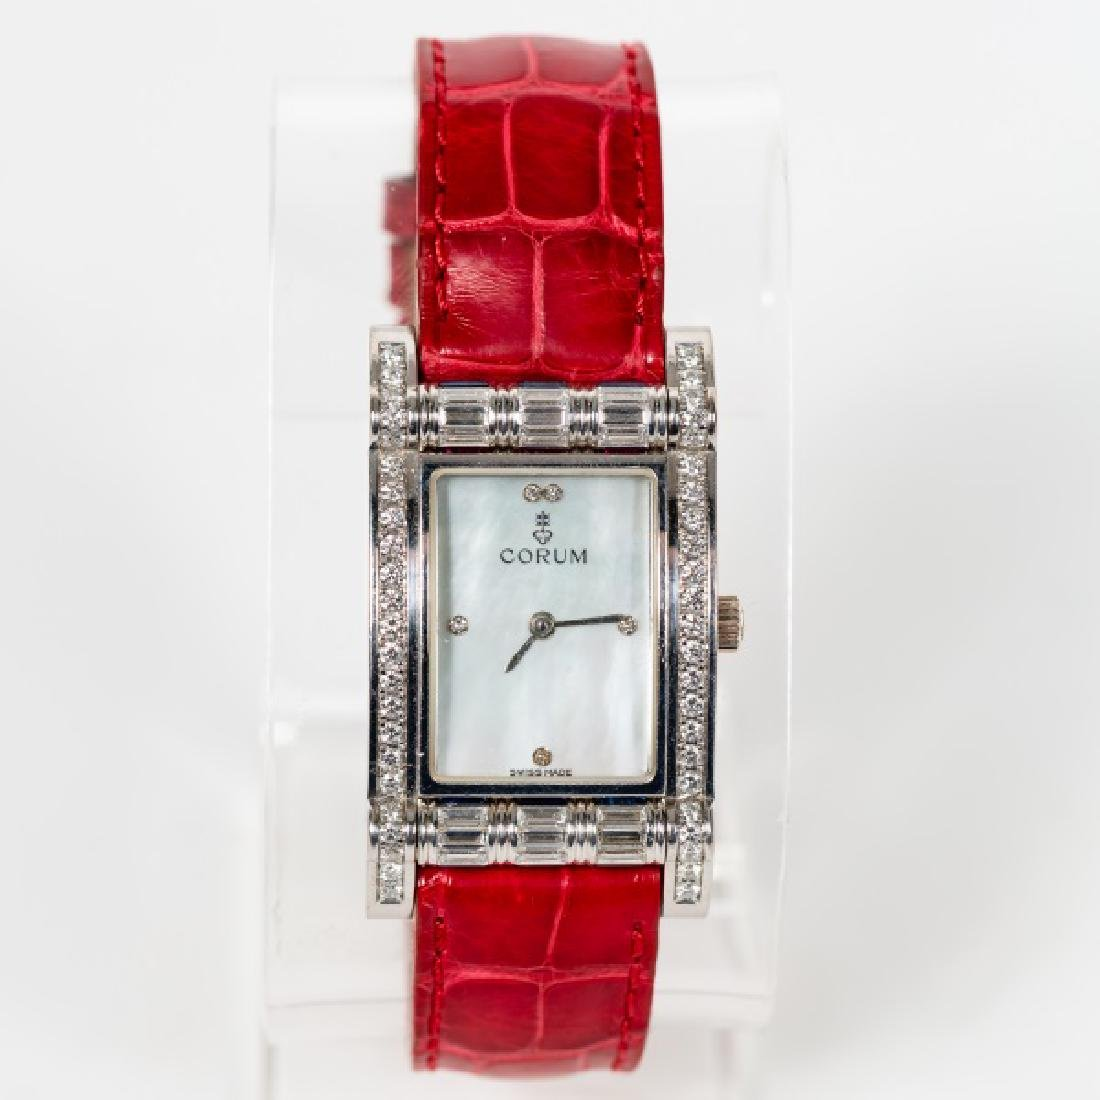 Corum 18k White Gold & Diamond Watch with MOP Face